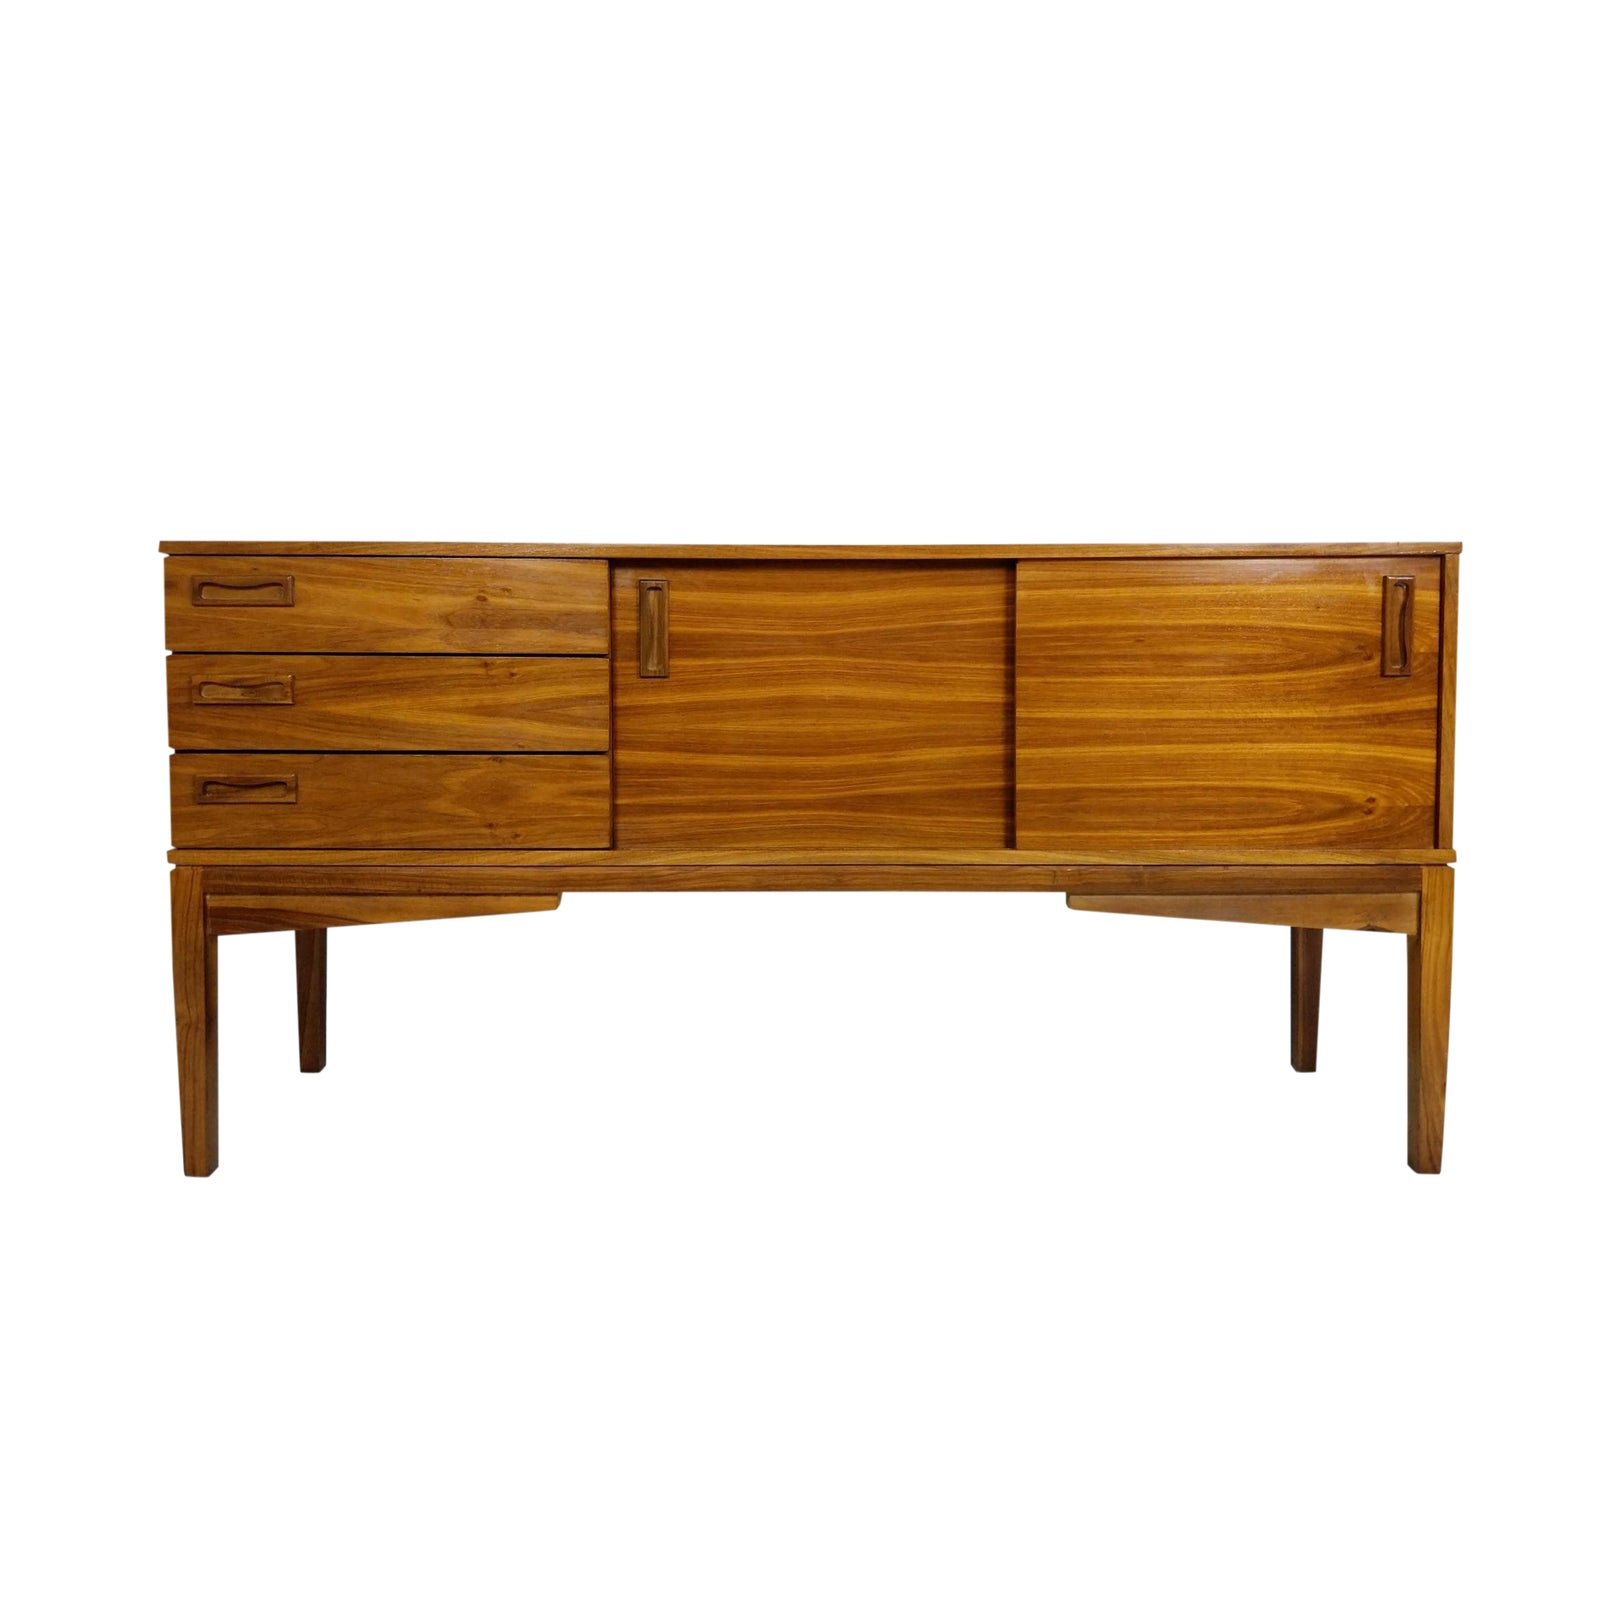 Mid century credenza or media console with sliding doors chairish